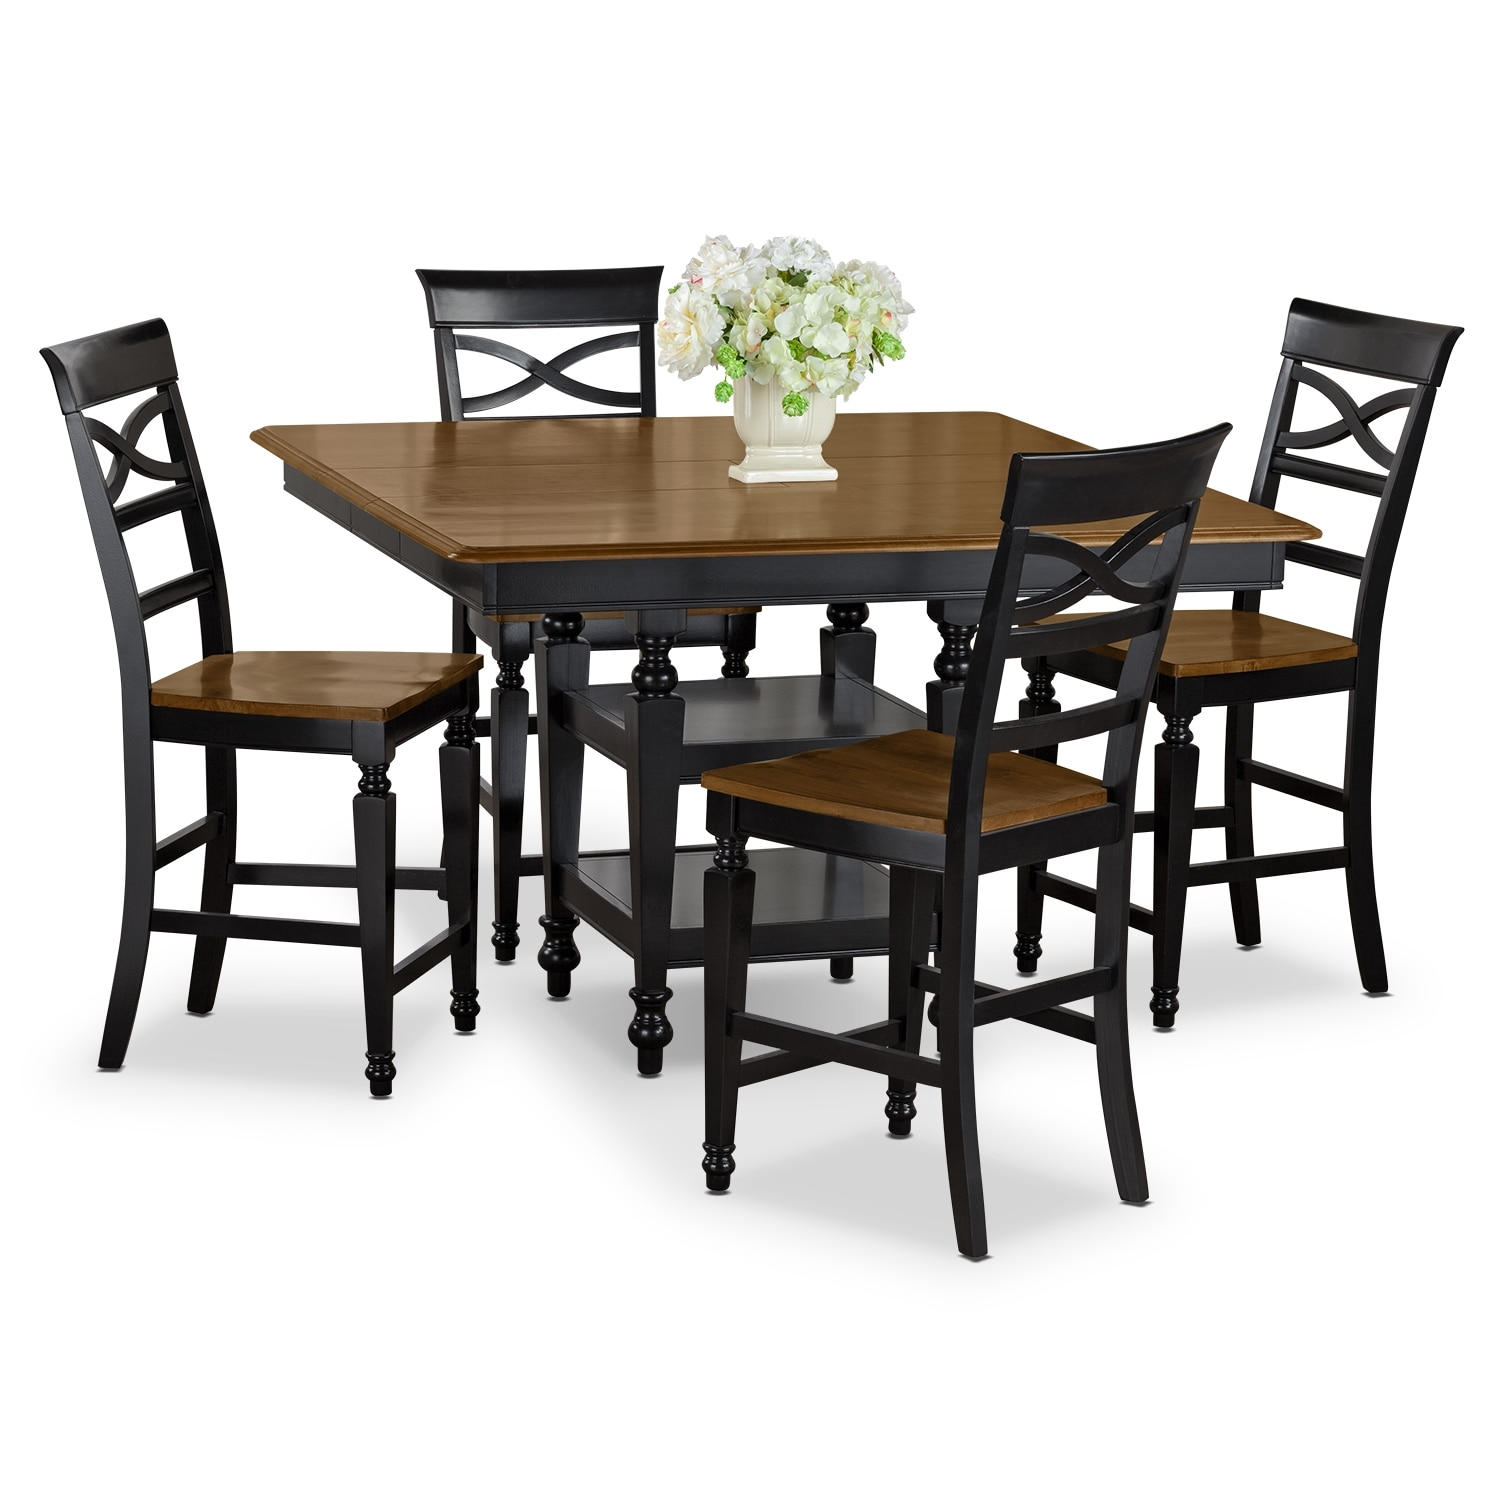 chesapeake dining room 5 pc counter height dinette american signature furniture. Black Bedroom Furniture Sets. Home Design Ideas